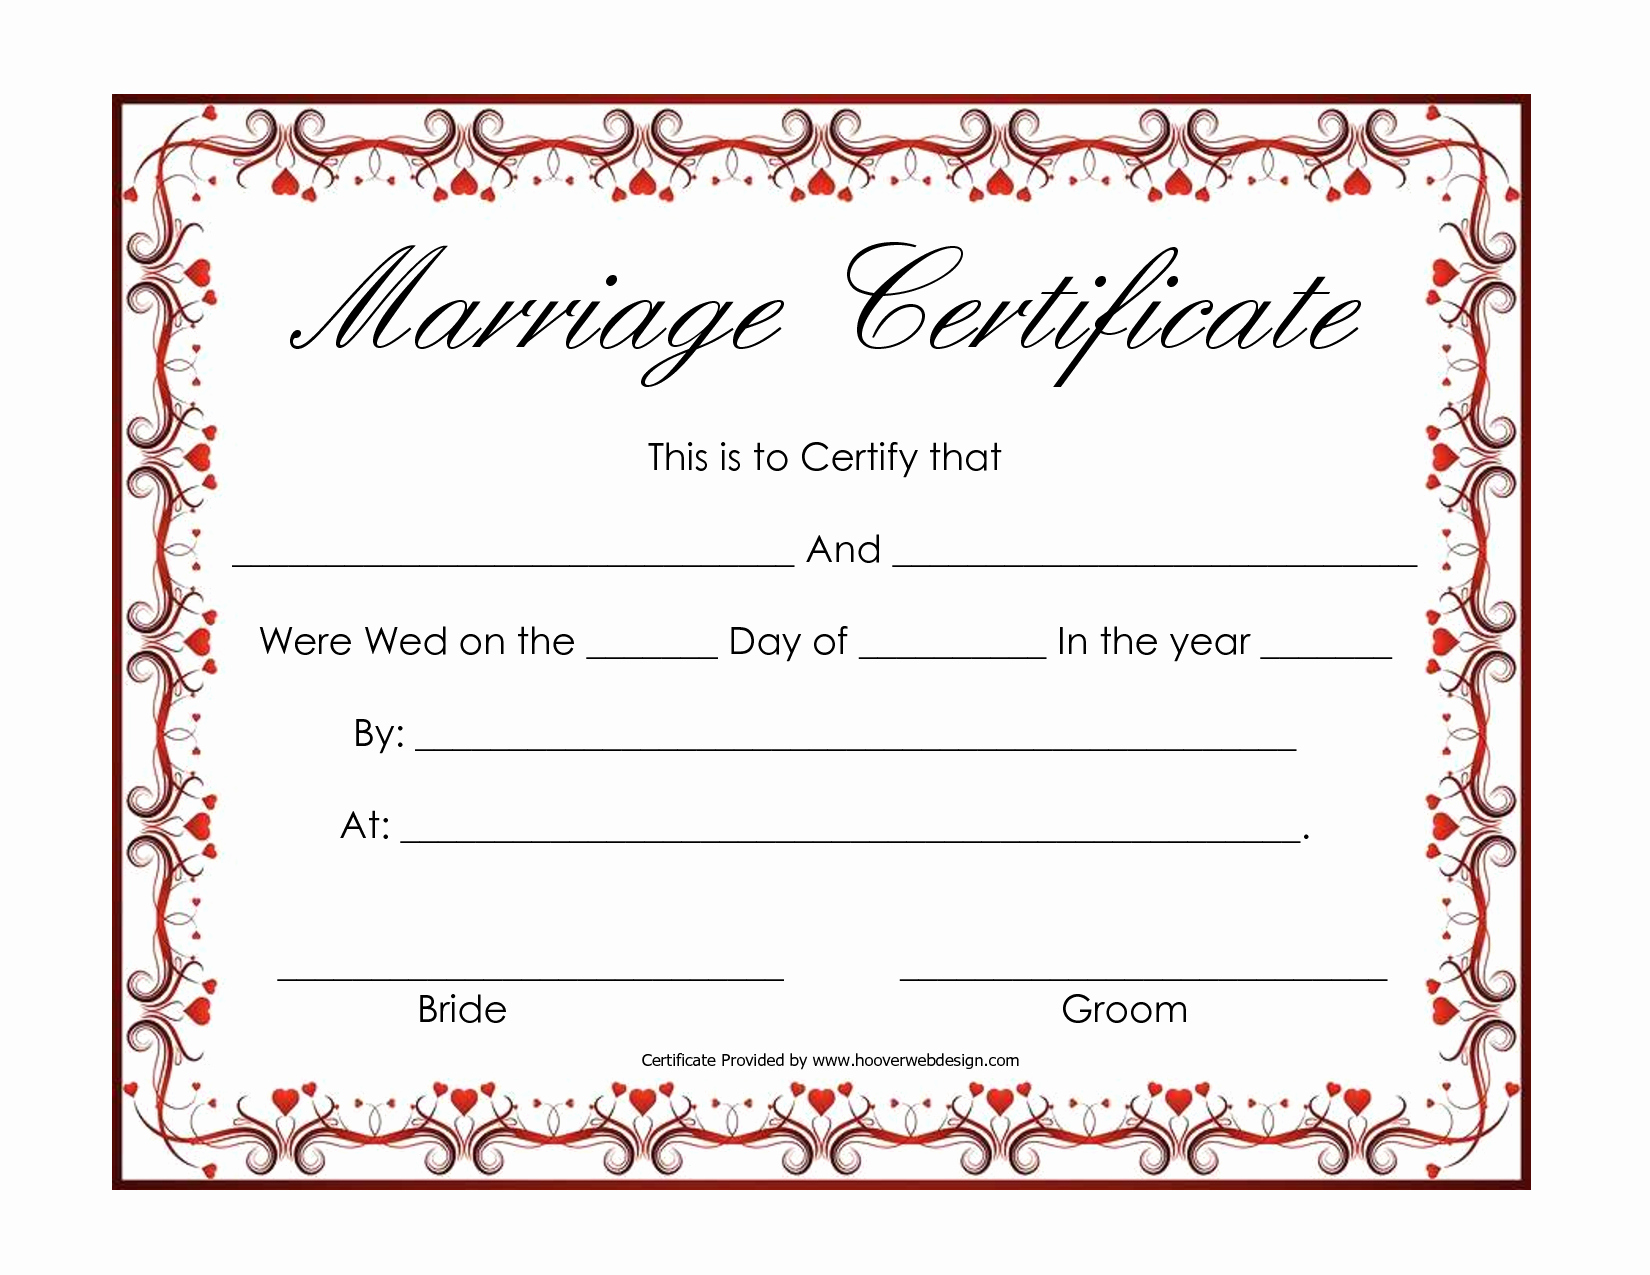 Blank Marriage Certificates Printable Luxury Free Blank Marriage Certificates